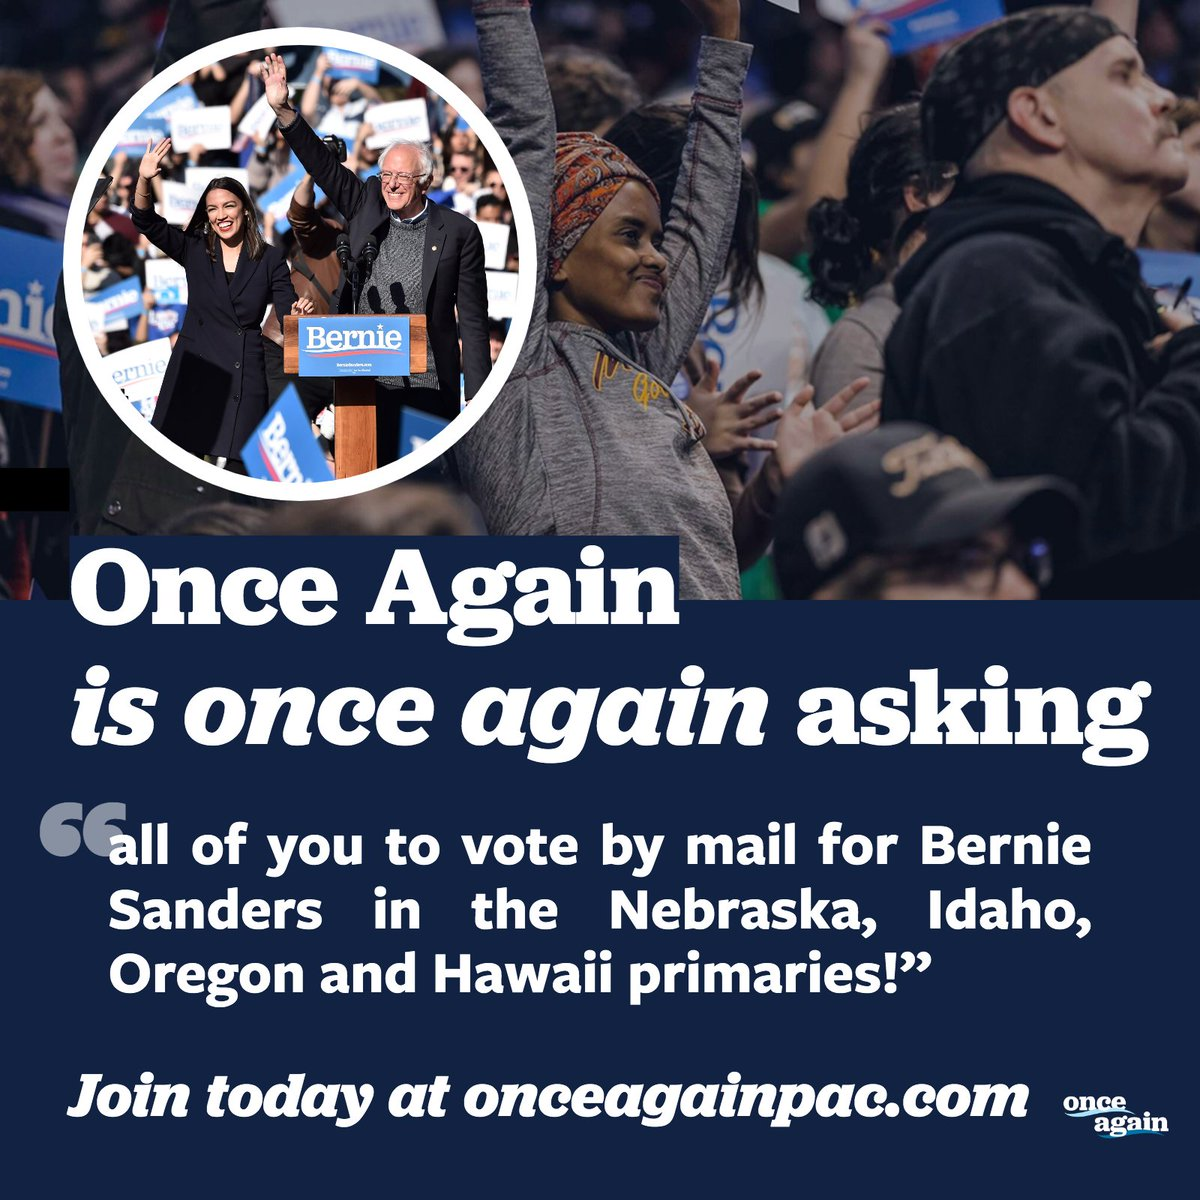 We are, #OnceAgain again, asking all of you to vote for Bernie Sanders in the Nebraska, Idaho, Oregon and Hawaii primaries.   This is your your franchise and we hope you will use it.👊